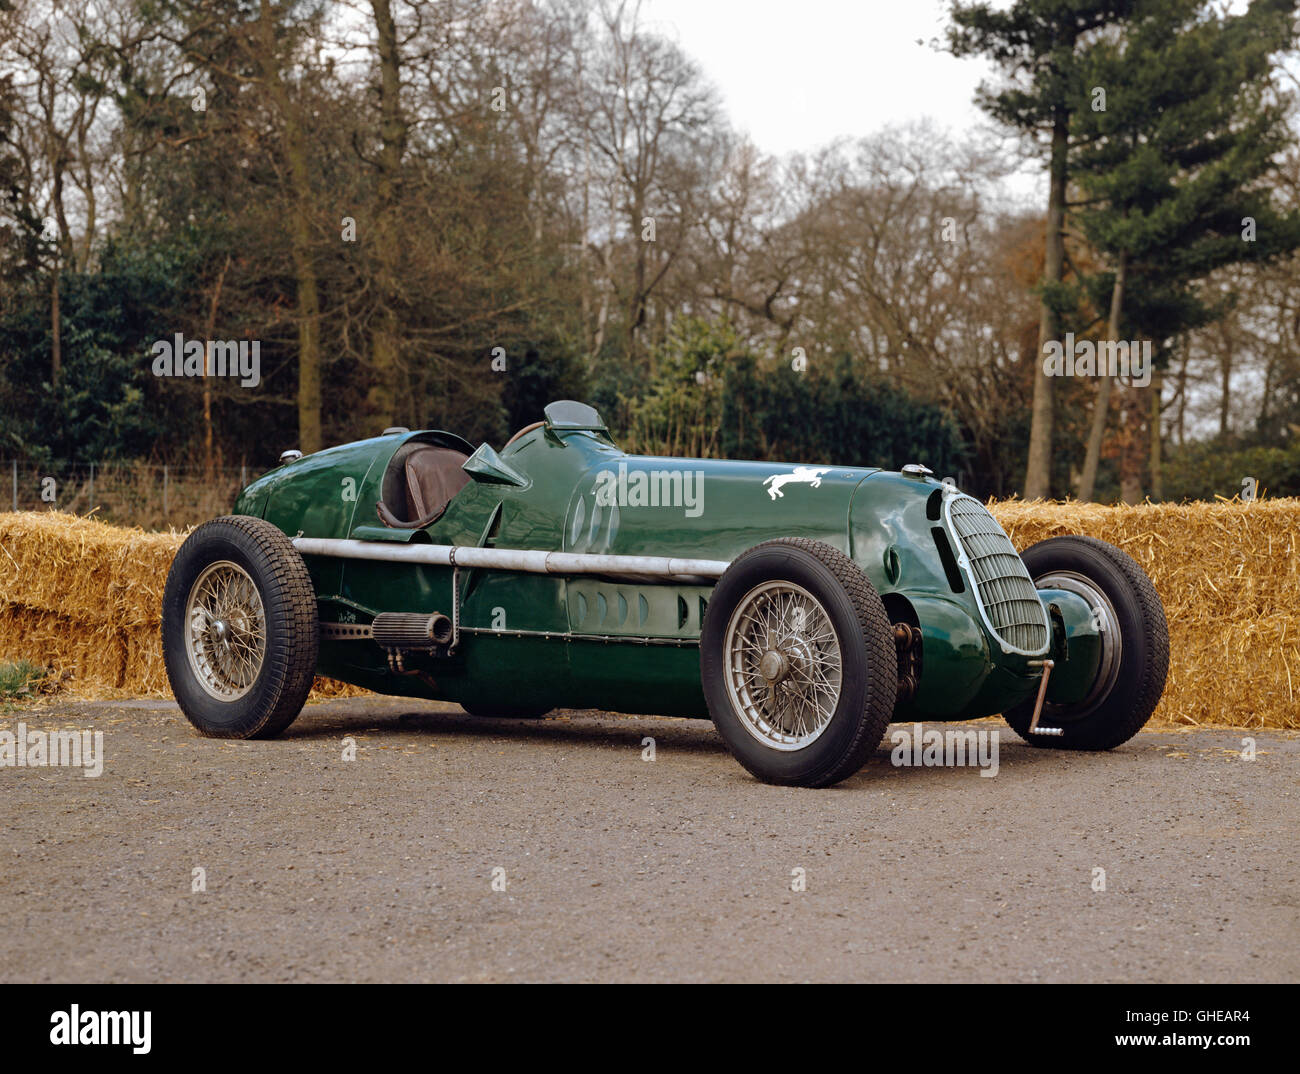 1935 alfa romeo 8c 35 3 8 litre grand prix single seat racing car stock photo royalty free. Black Bedroom Furniture Sets. Home Design Ideas